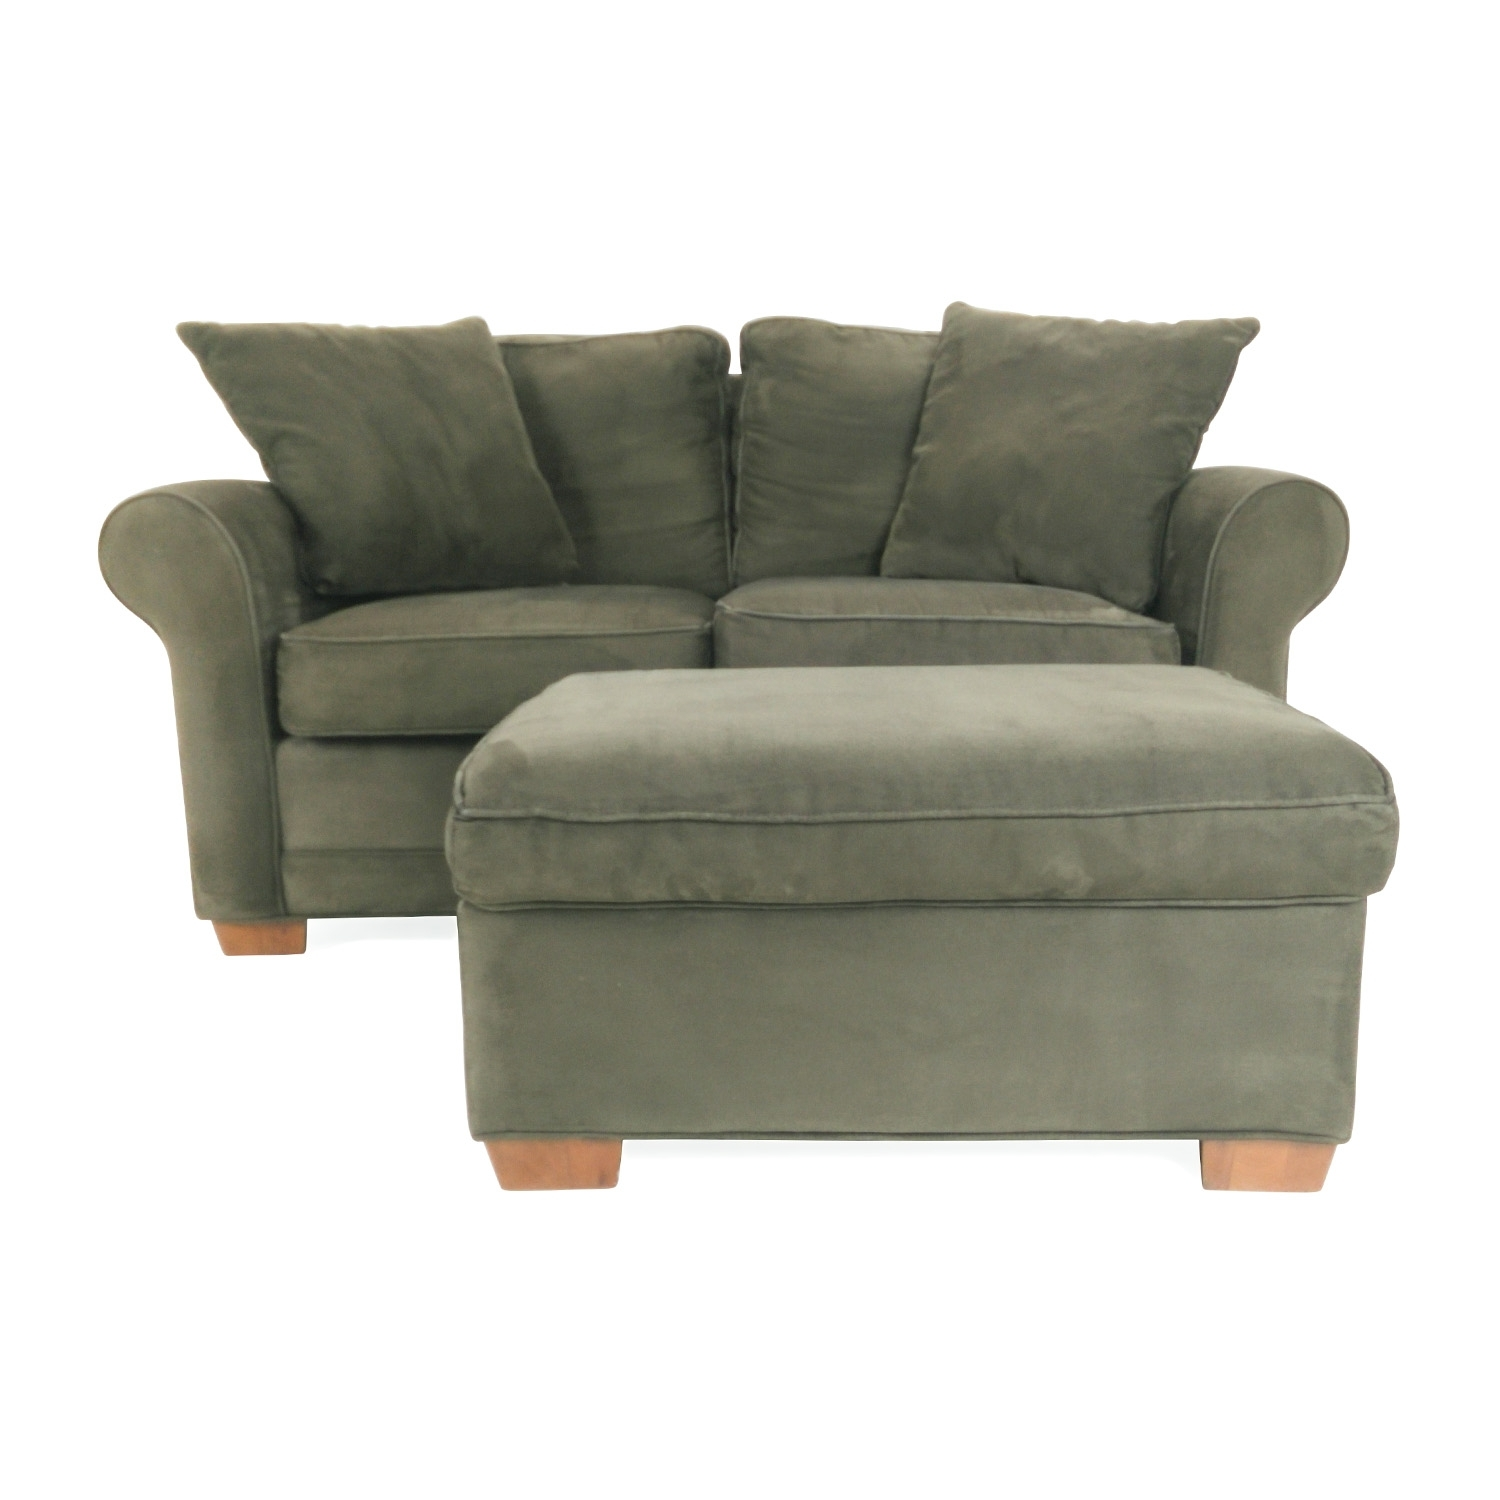 70% Off   Klaussner Salina Klaussner Salina Brown Two Seater With Loveseats With Ottoman (Photo 1 of 15)